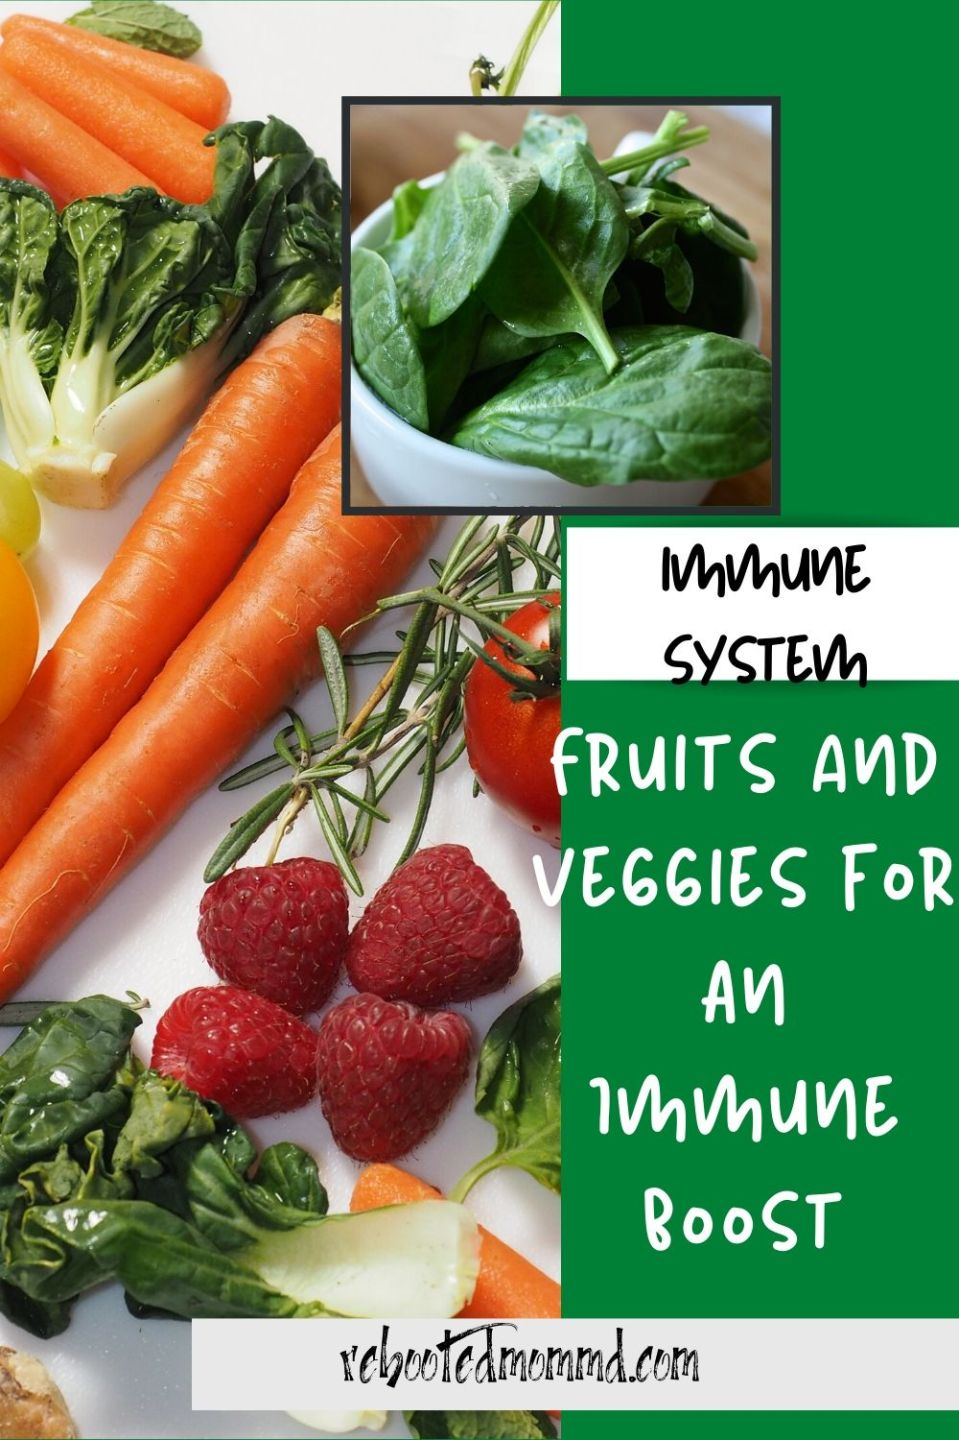 Good Fruits and Vegetables for Your Immune System